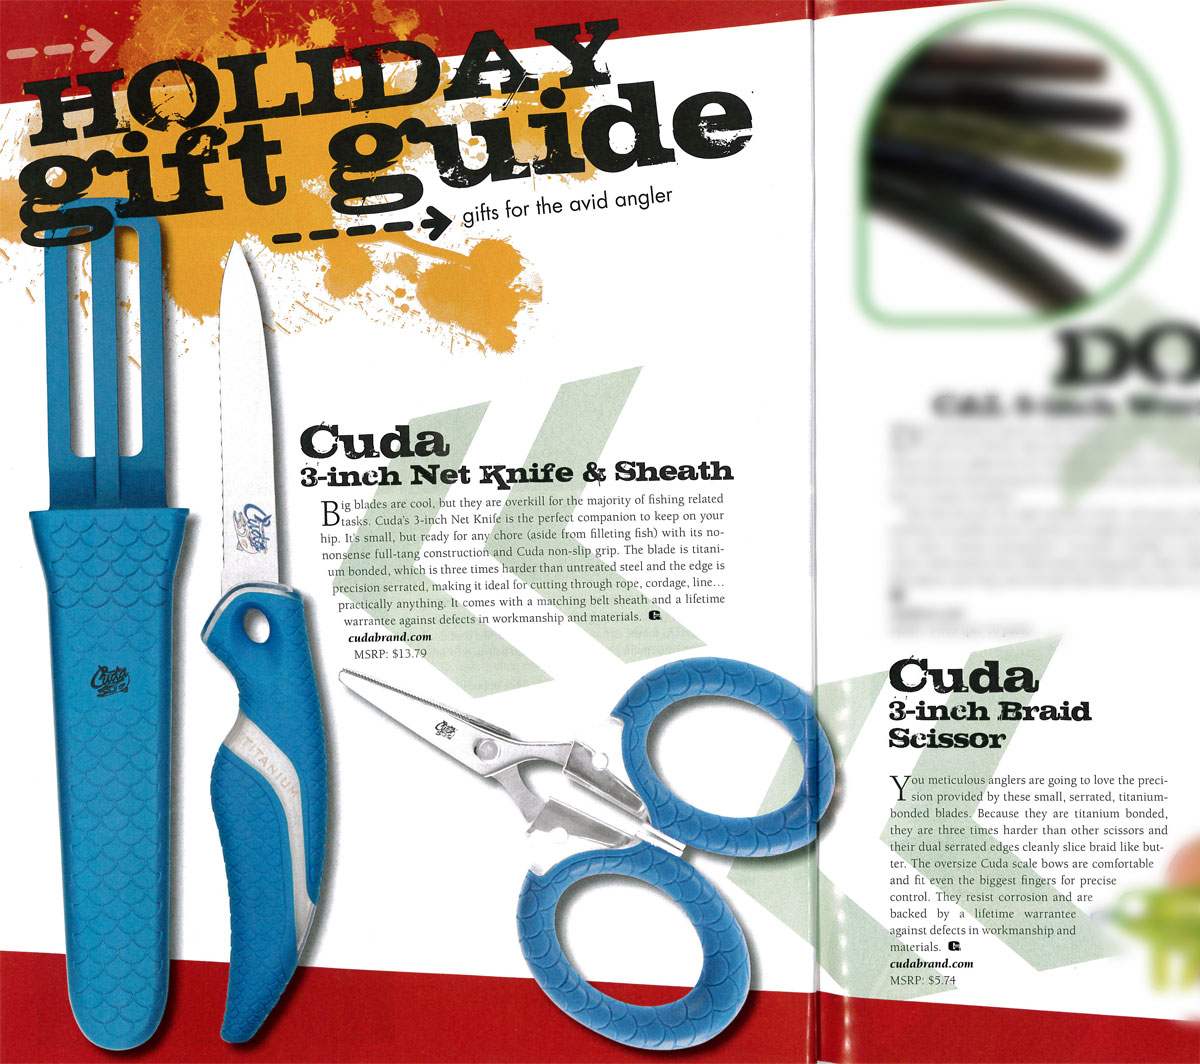 Featured in GAFF's holiday gift guide - Dec, 2015